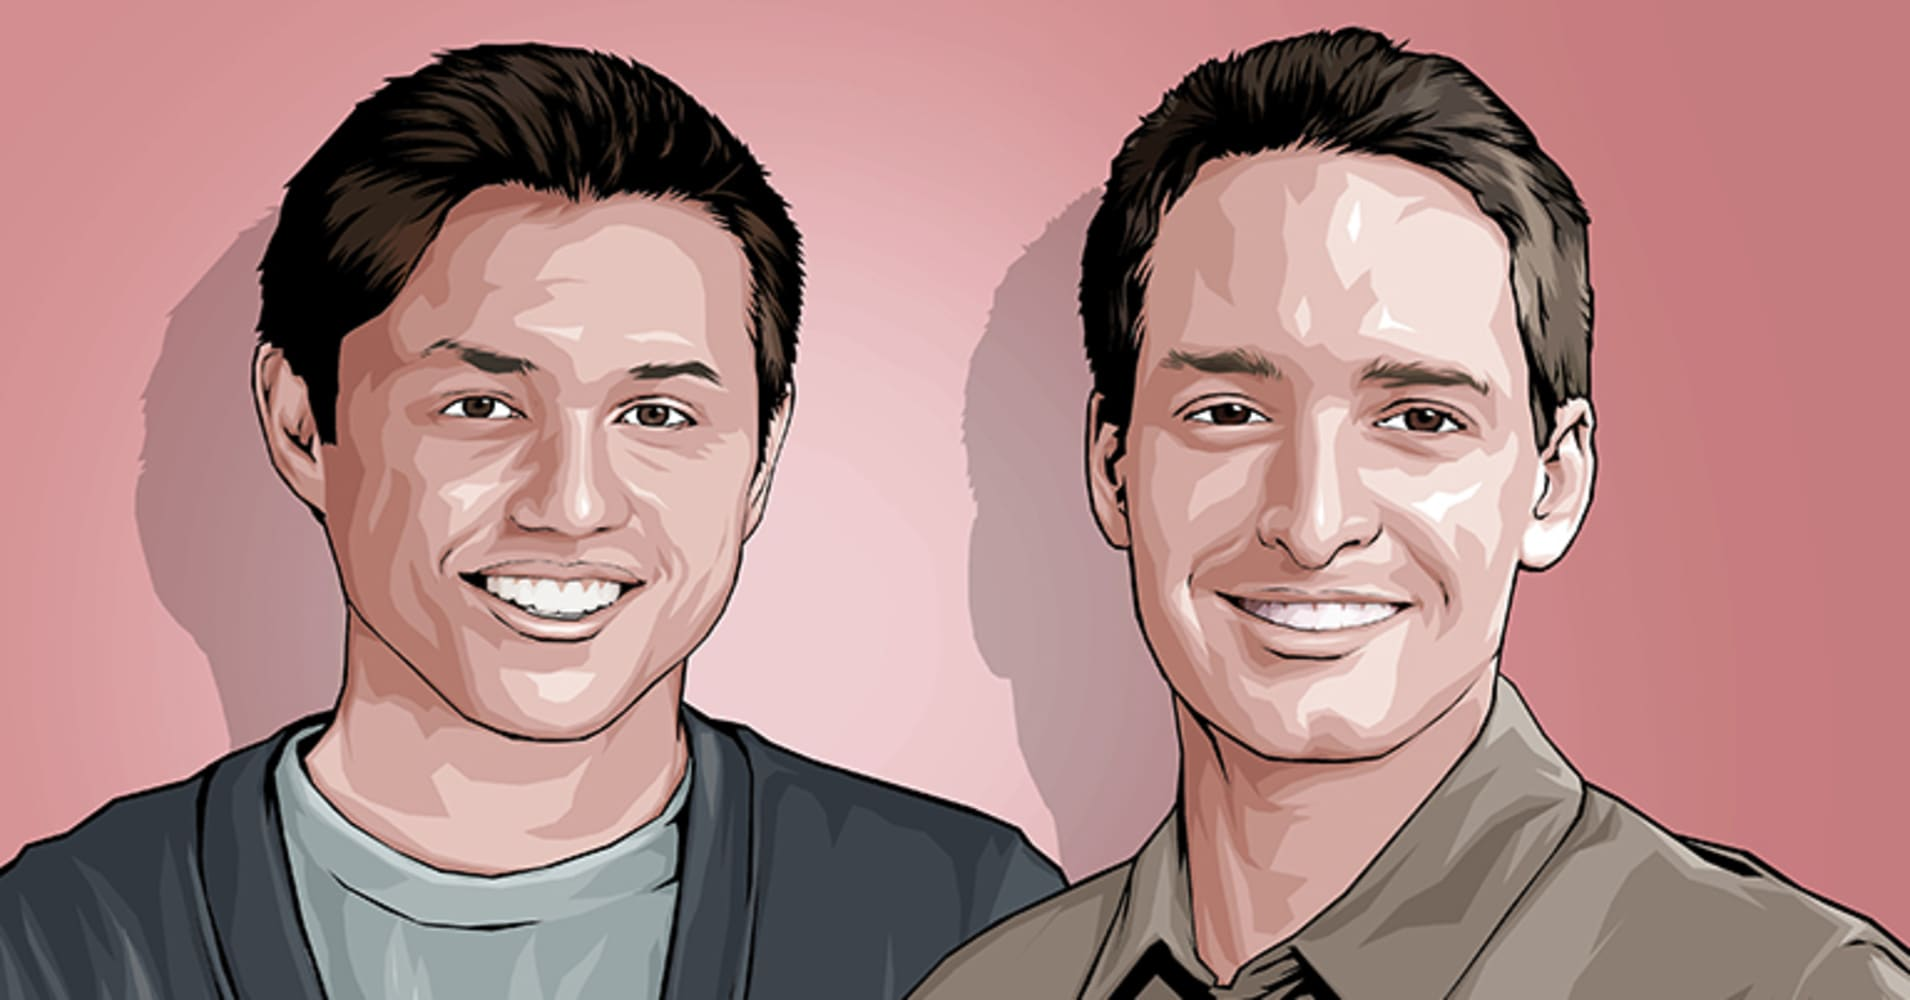 Bobby murphy and evan spiegel for Spiegel young money etf